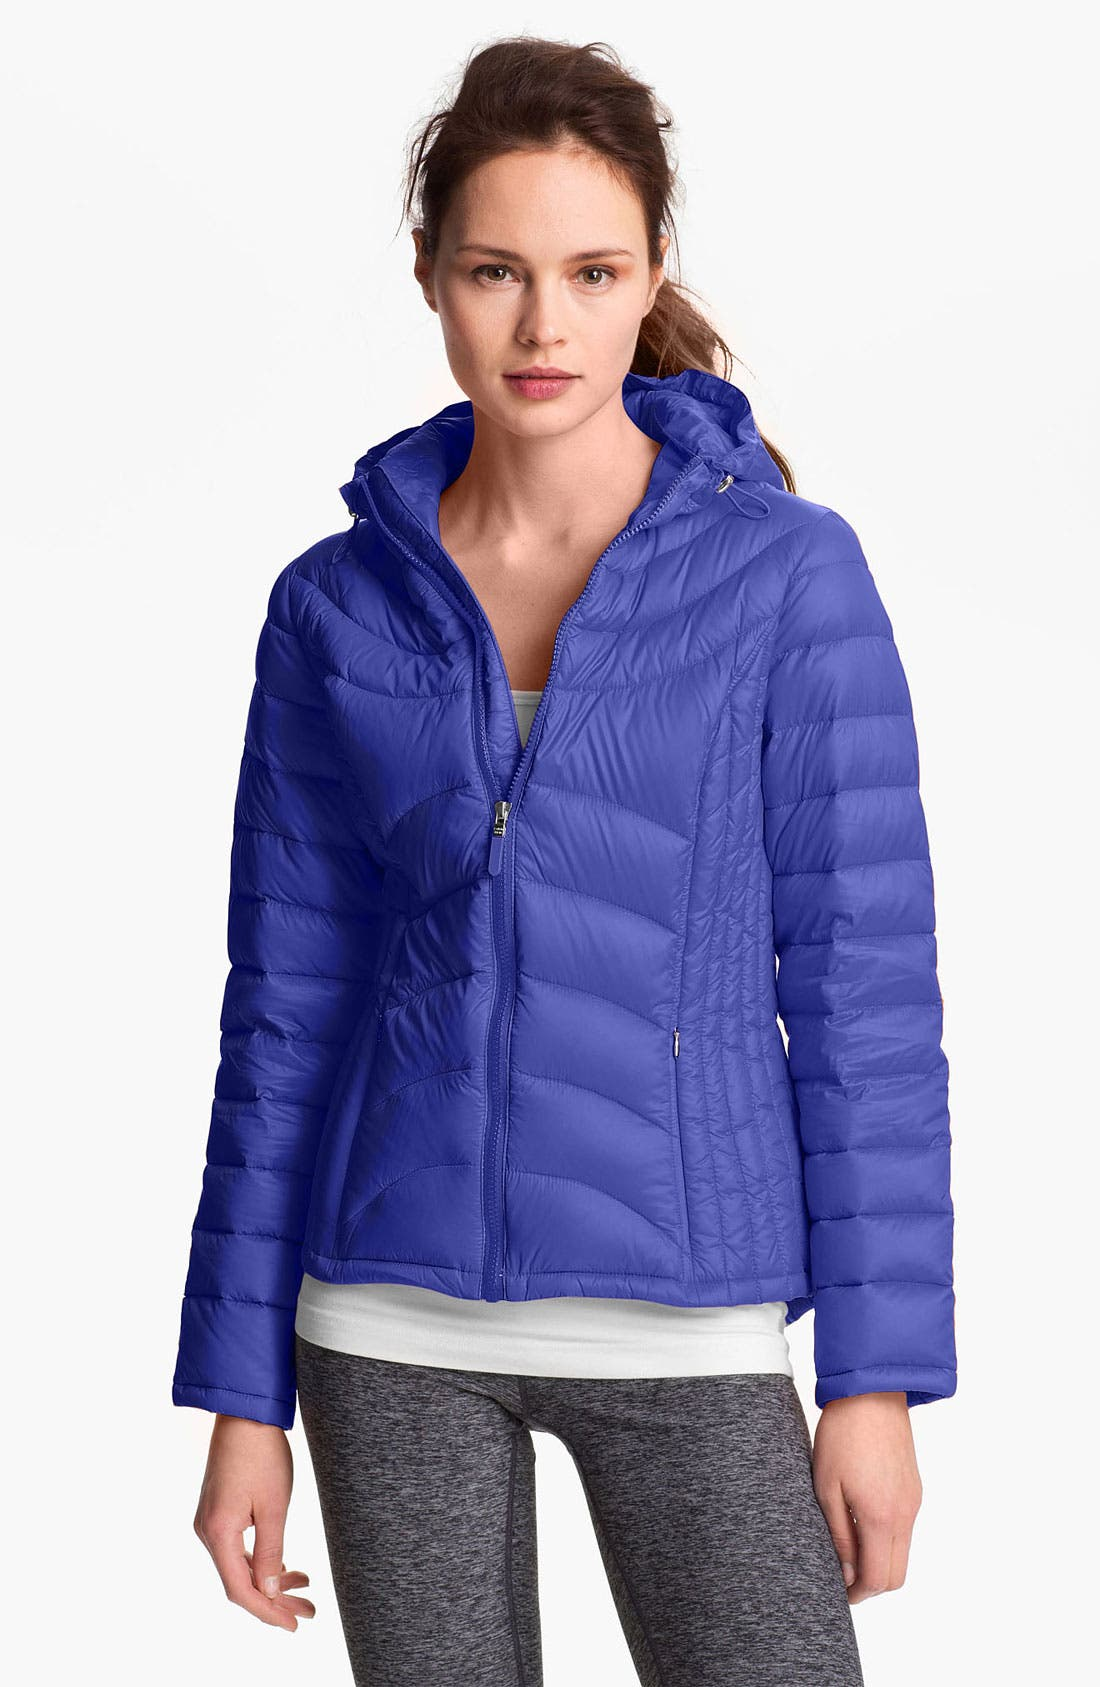 Alternate Image 1 Selected - Calvin Klein Hooded Packable Down Jacket